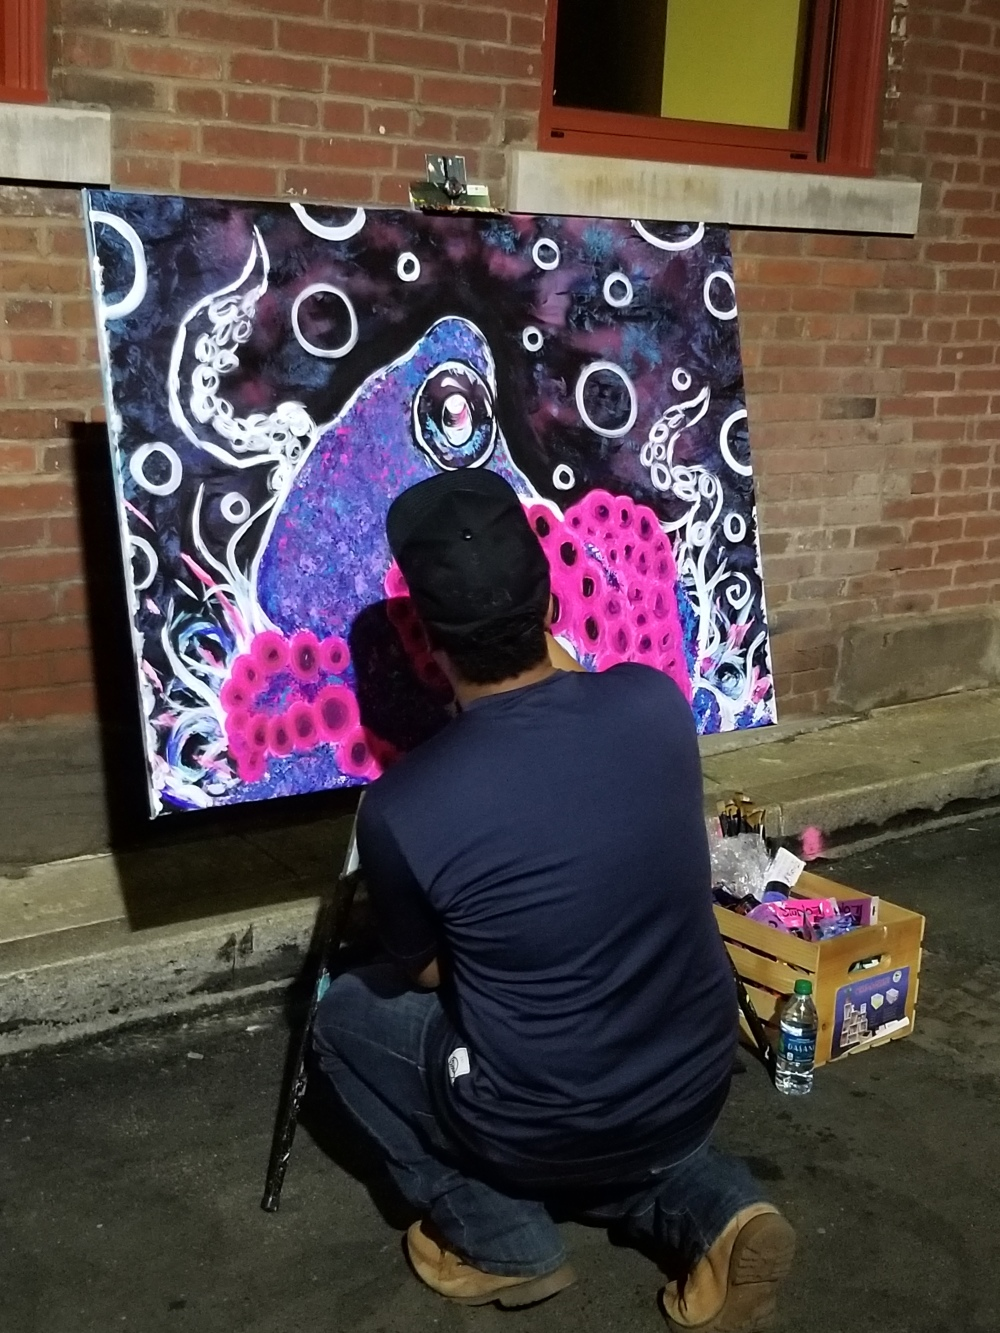 I Sold My Thrival Festival Tickets & Went Art Crawling in The Cultural District